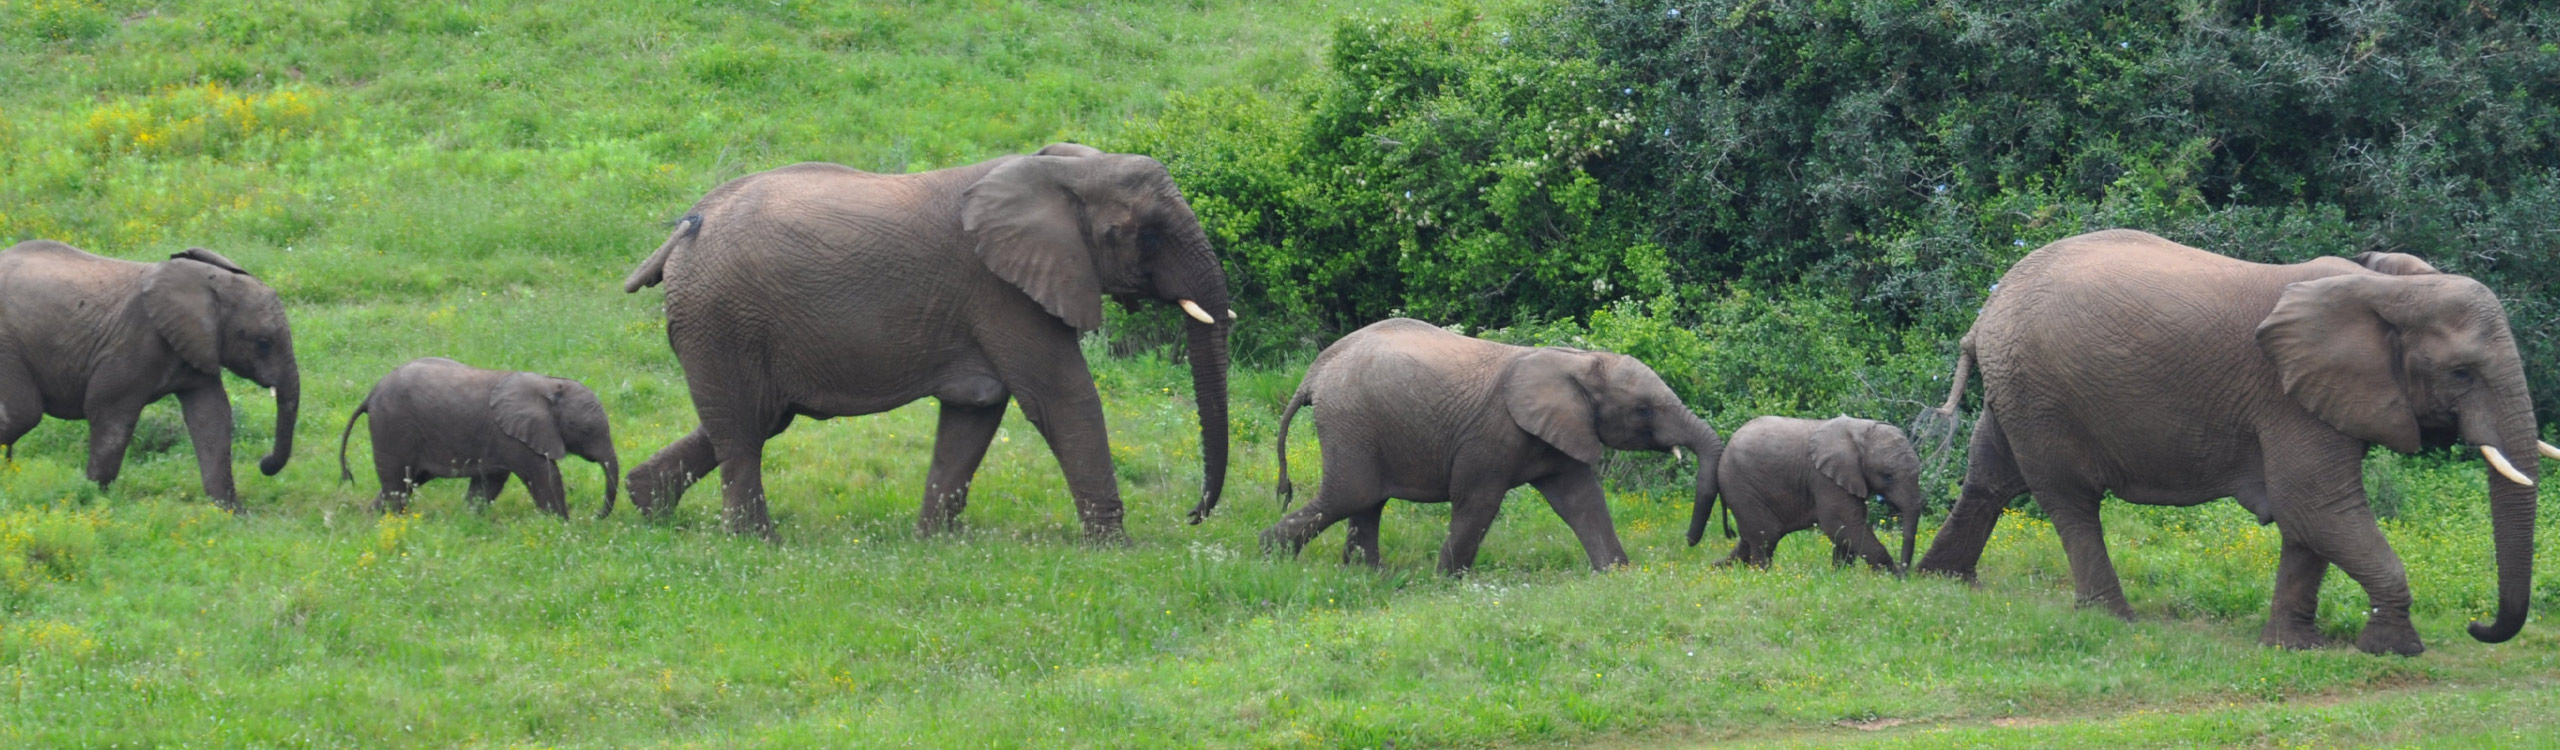 Hopewell Private Game Reserve Elephants